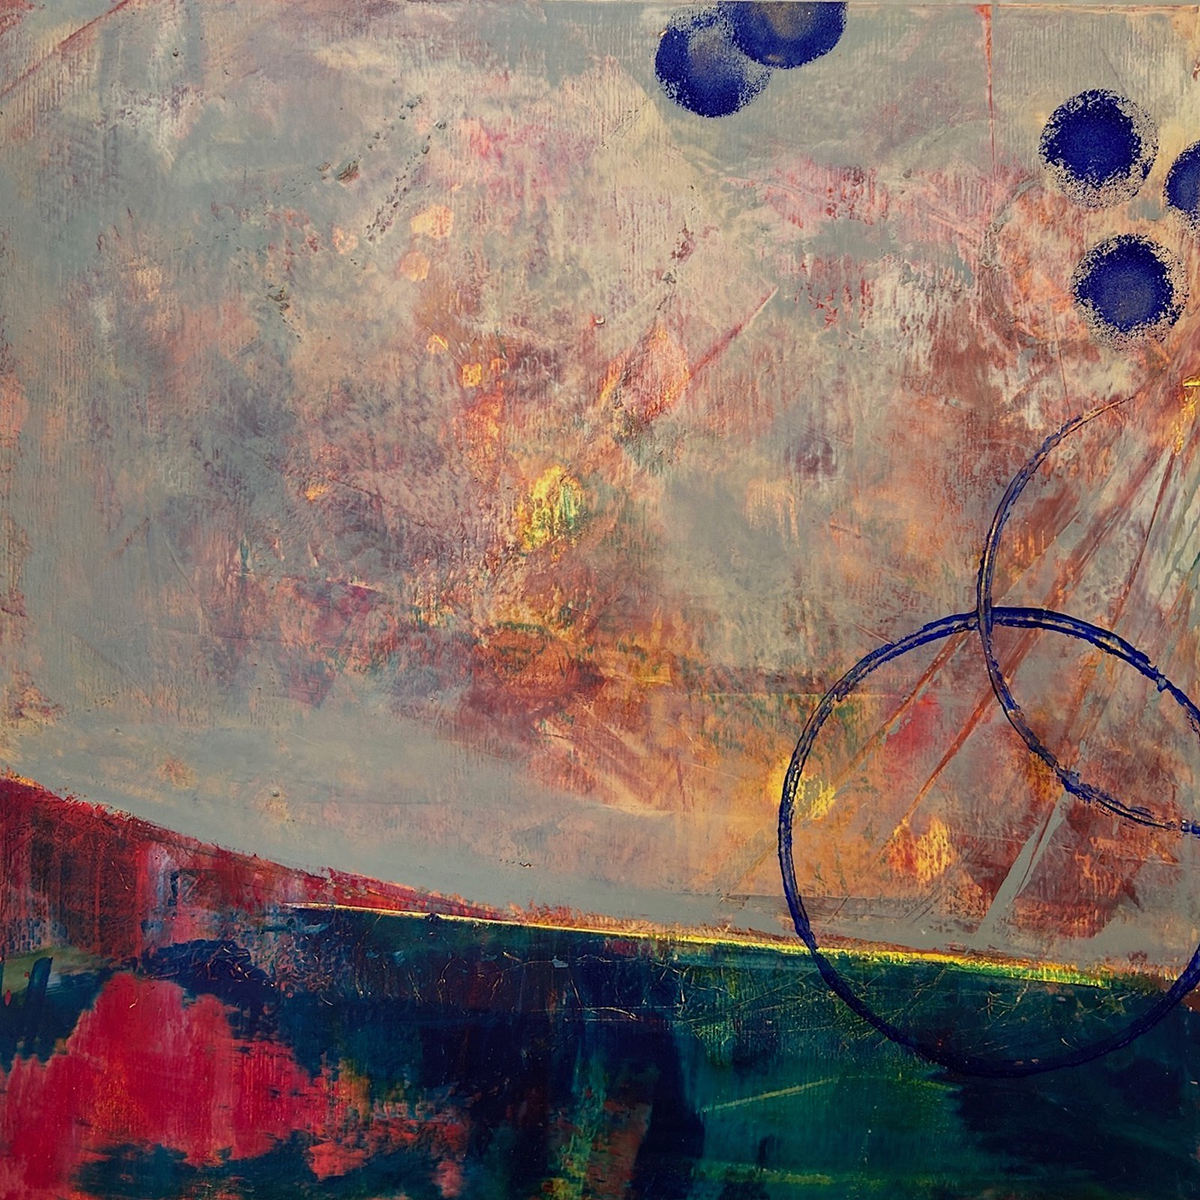 Horizons, oil and cold wax painting by Elizabeth Shaw Neviaser.